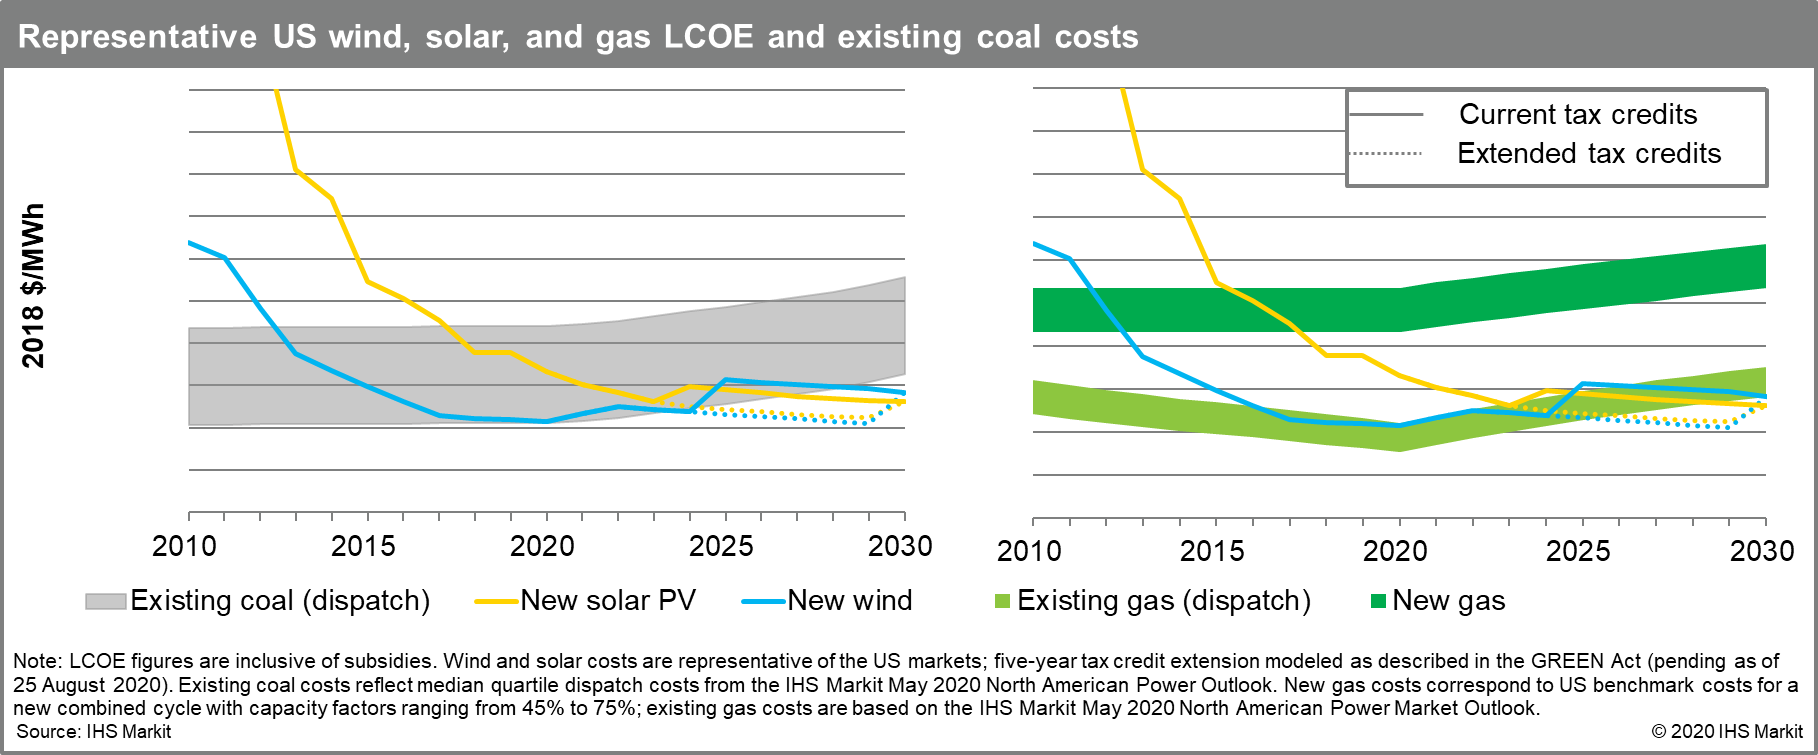 Representative US wind, solar, and gas LCOE and existing coal costs